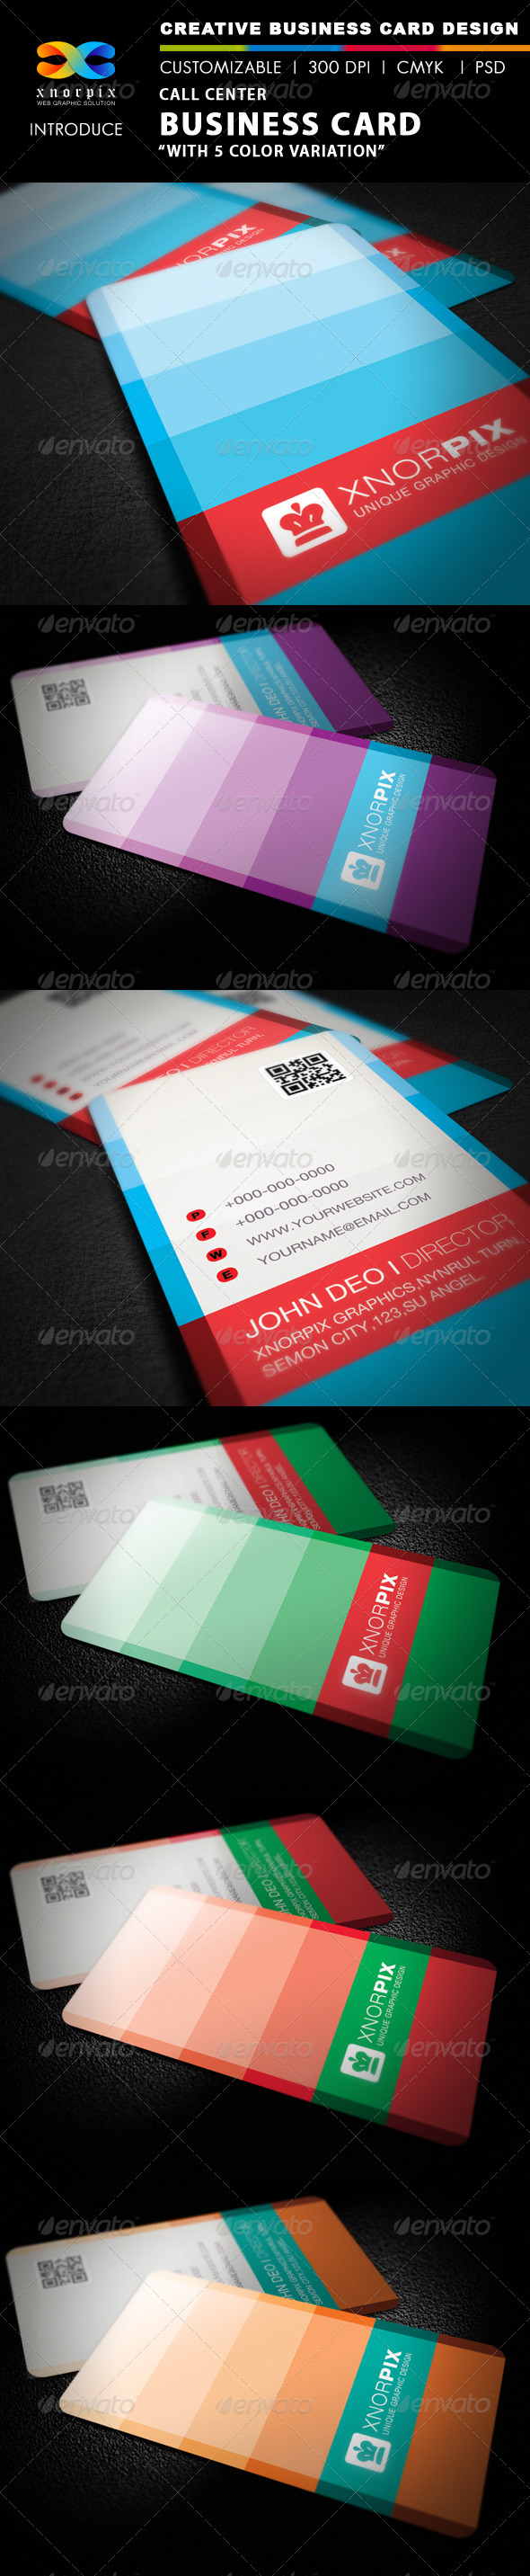 Call Center Business Card - Creative Business Cards